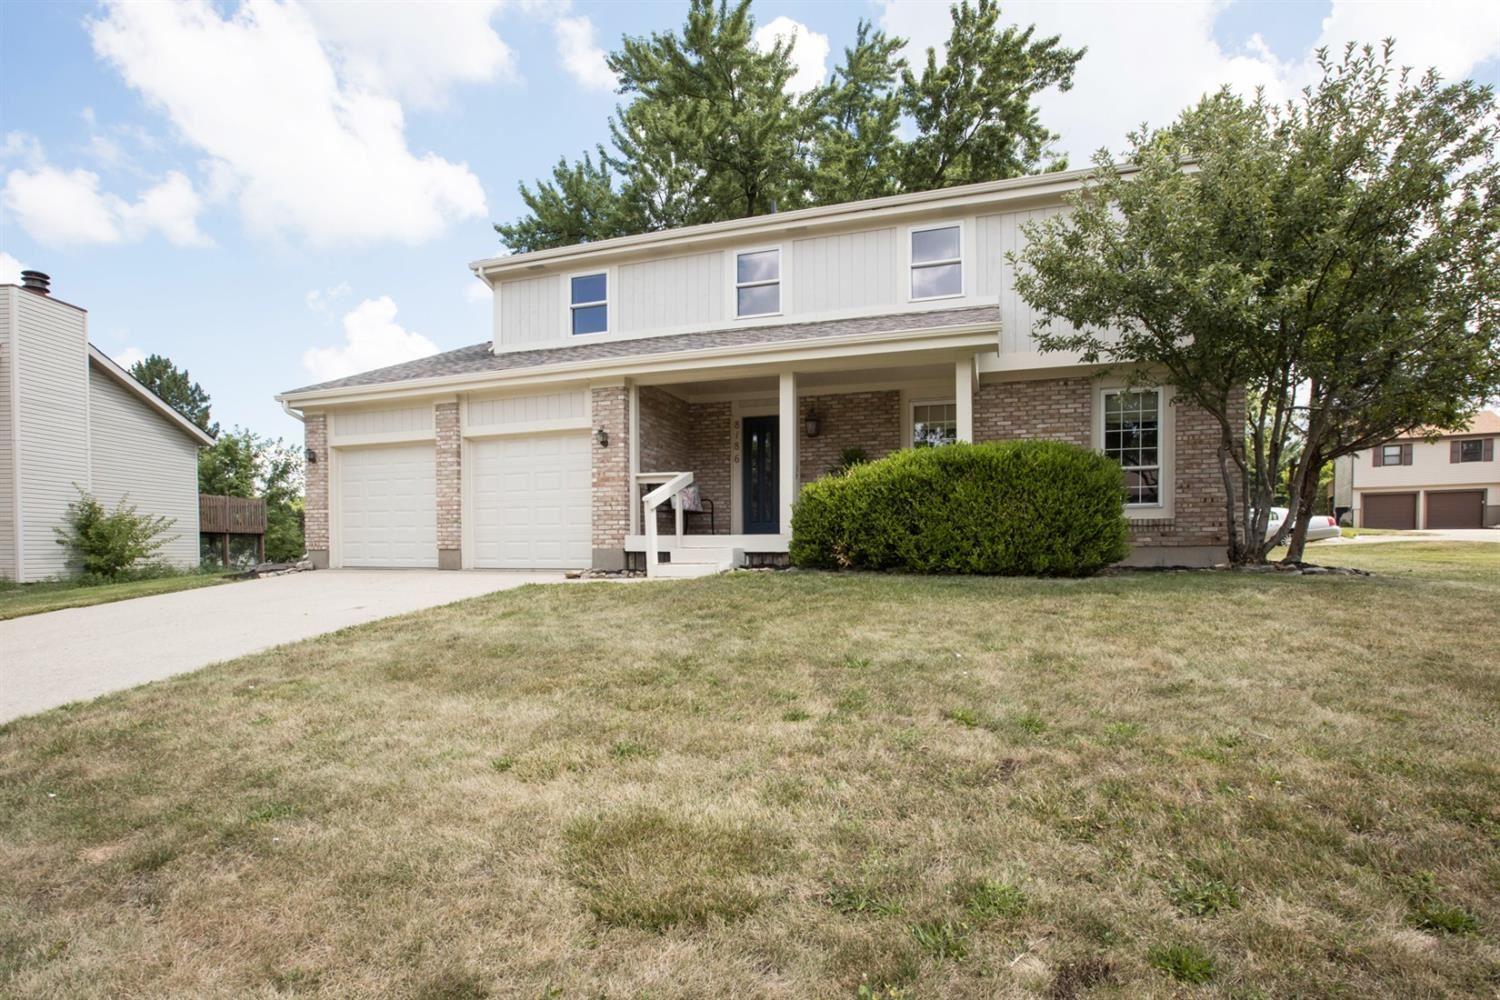 8186 Rollingwood Way, West Chester, OH 45069 - #: 1667972